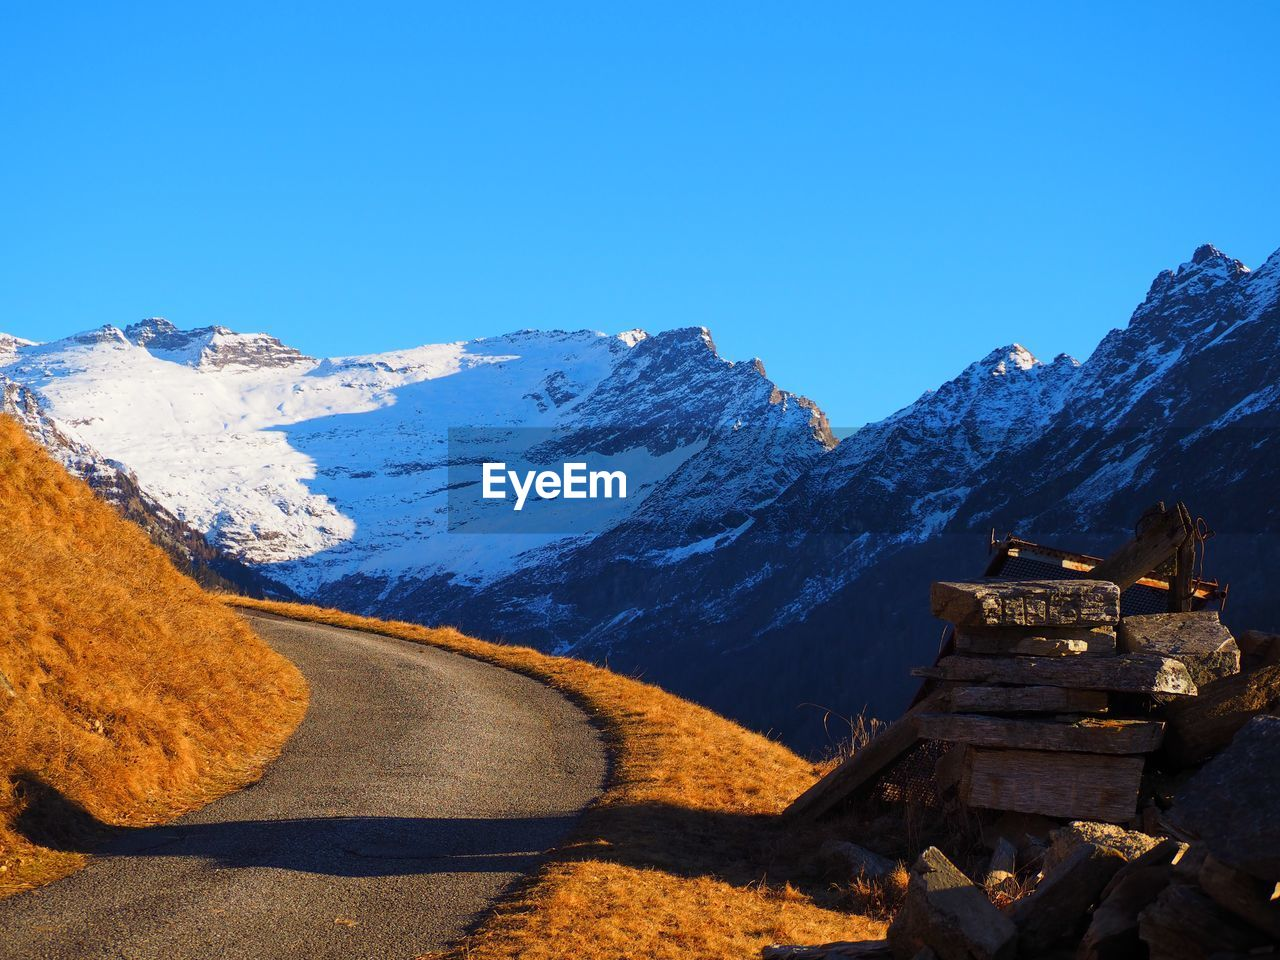 VIEW OF MOUNTAIN RANGE AGAINST CLEAR BLUE SKY